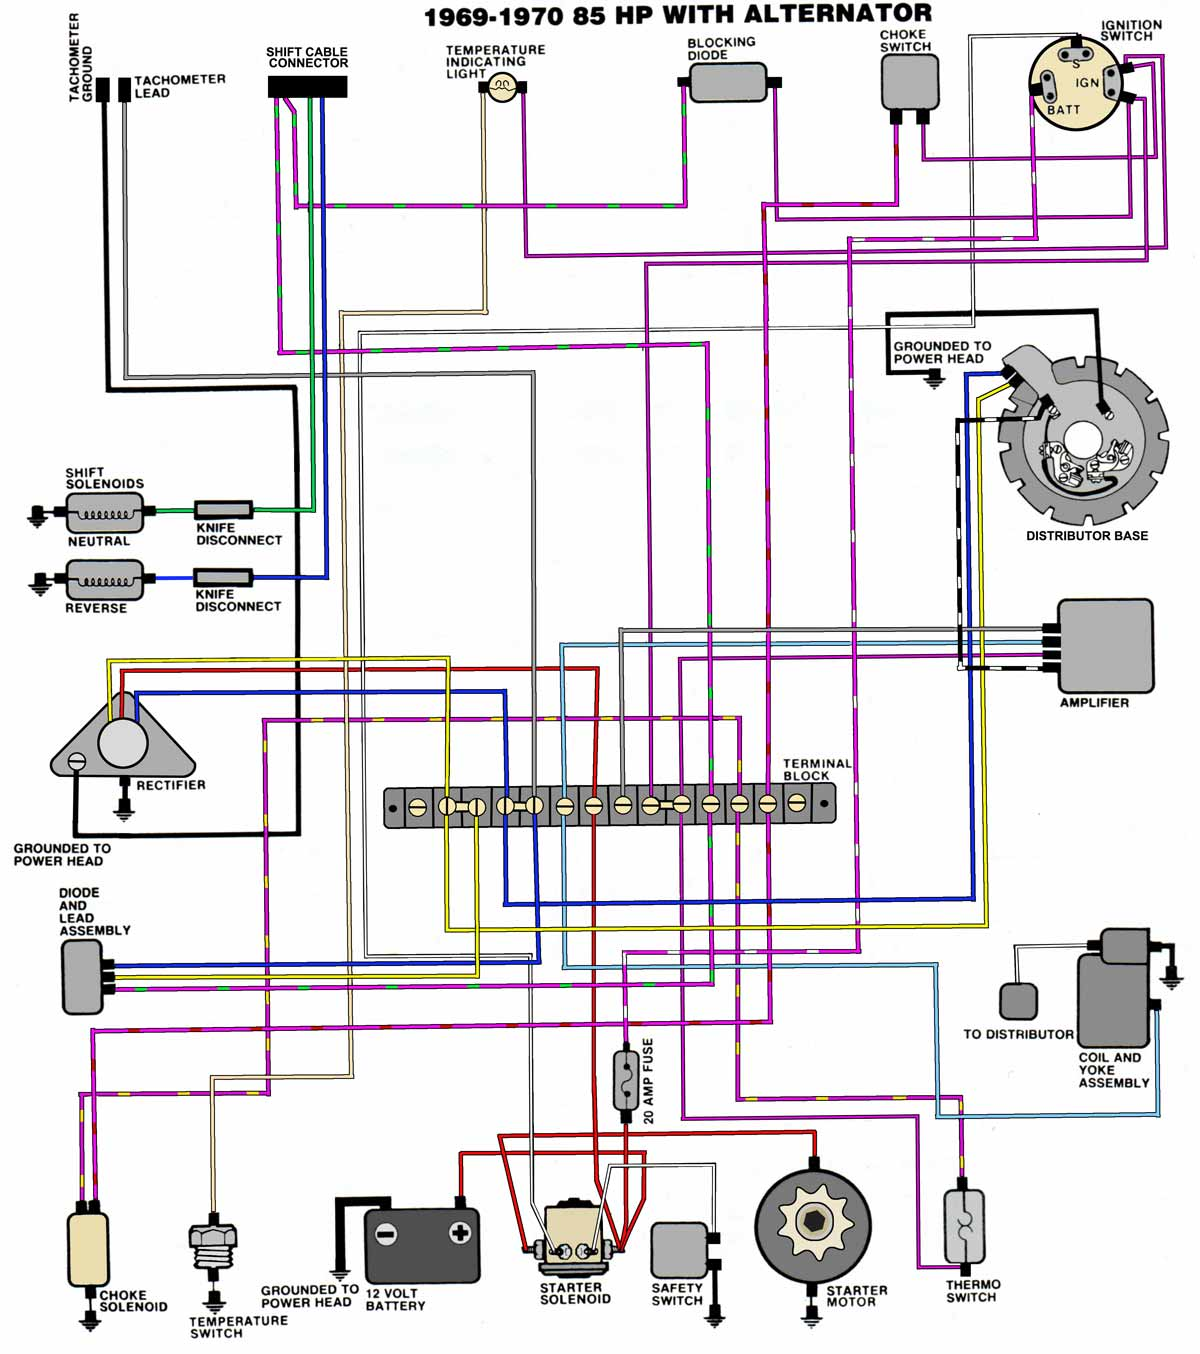 Omc Trim Switch Wiring Diagram - Wiring Diagram All Omc Trim Motor Wiring Diagram on